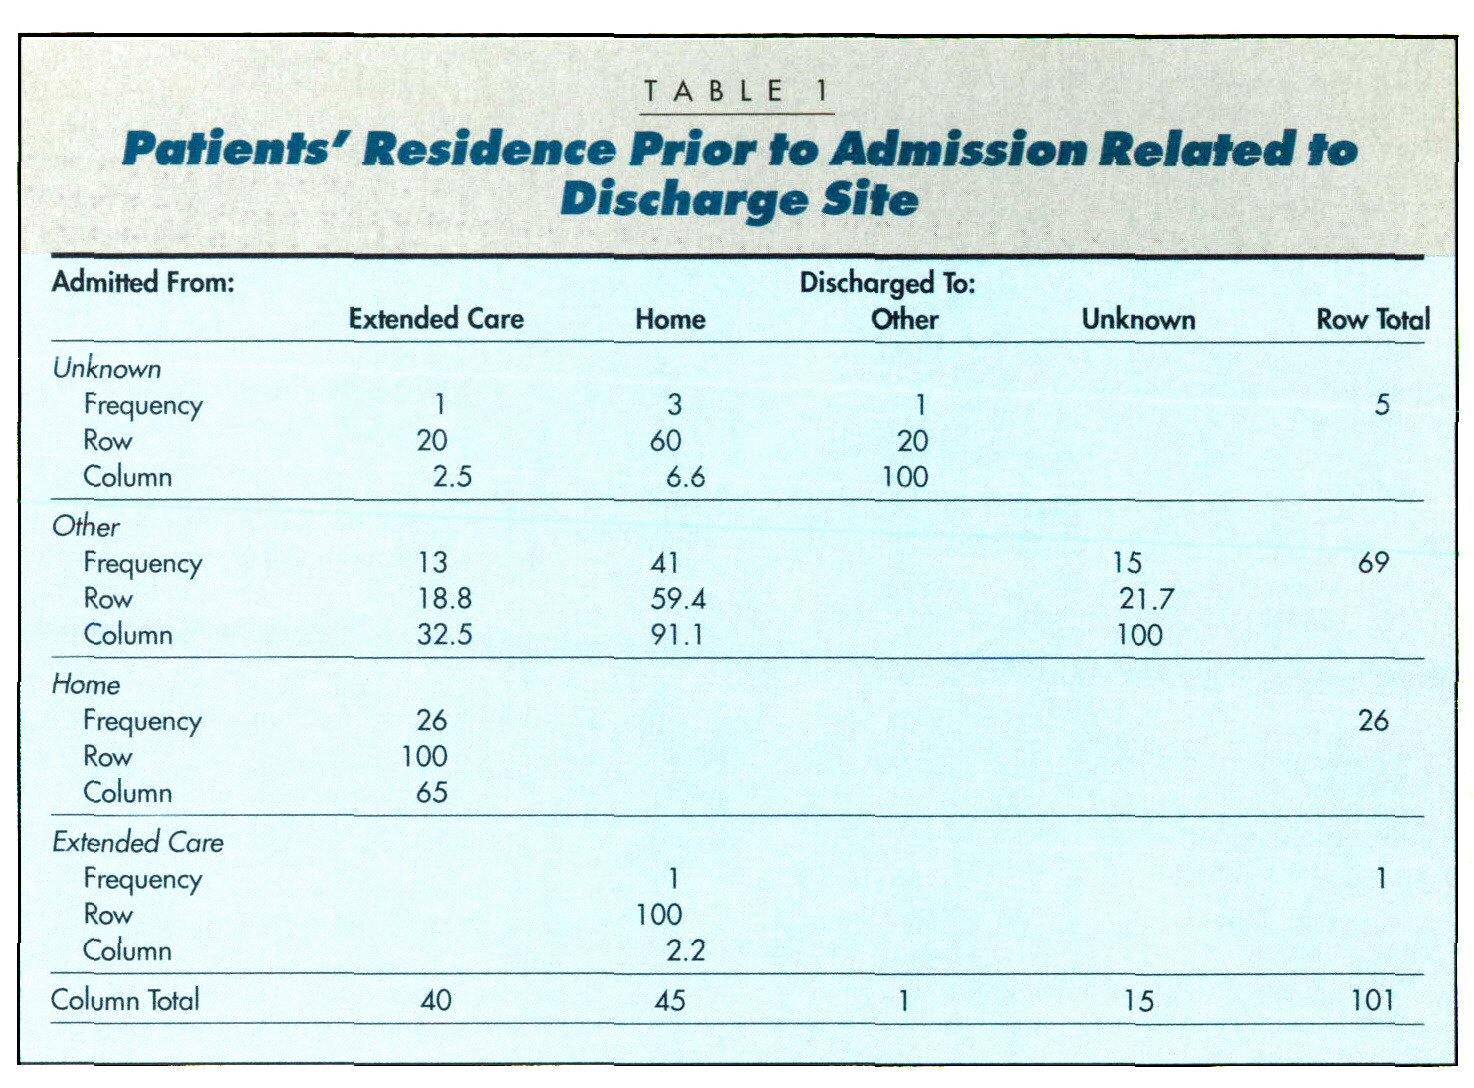 TABLE 1Patients' Resilience Prior to Admission Related to Discharge Site